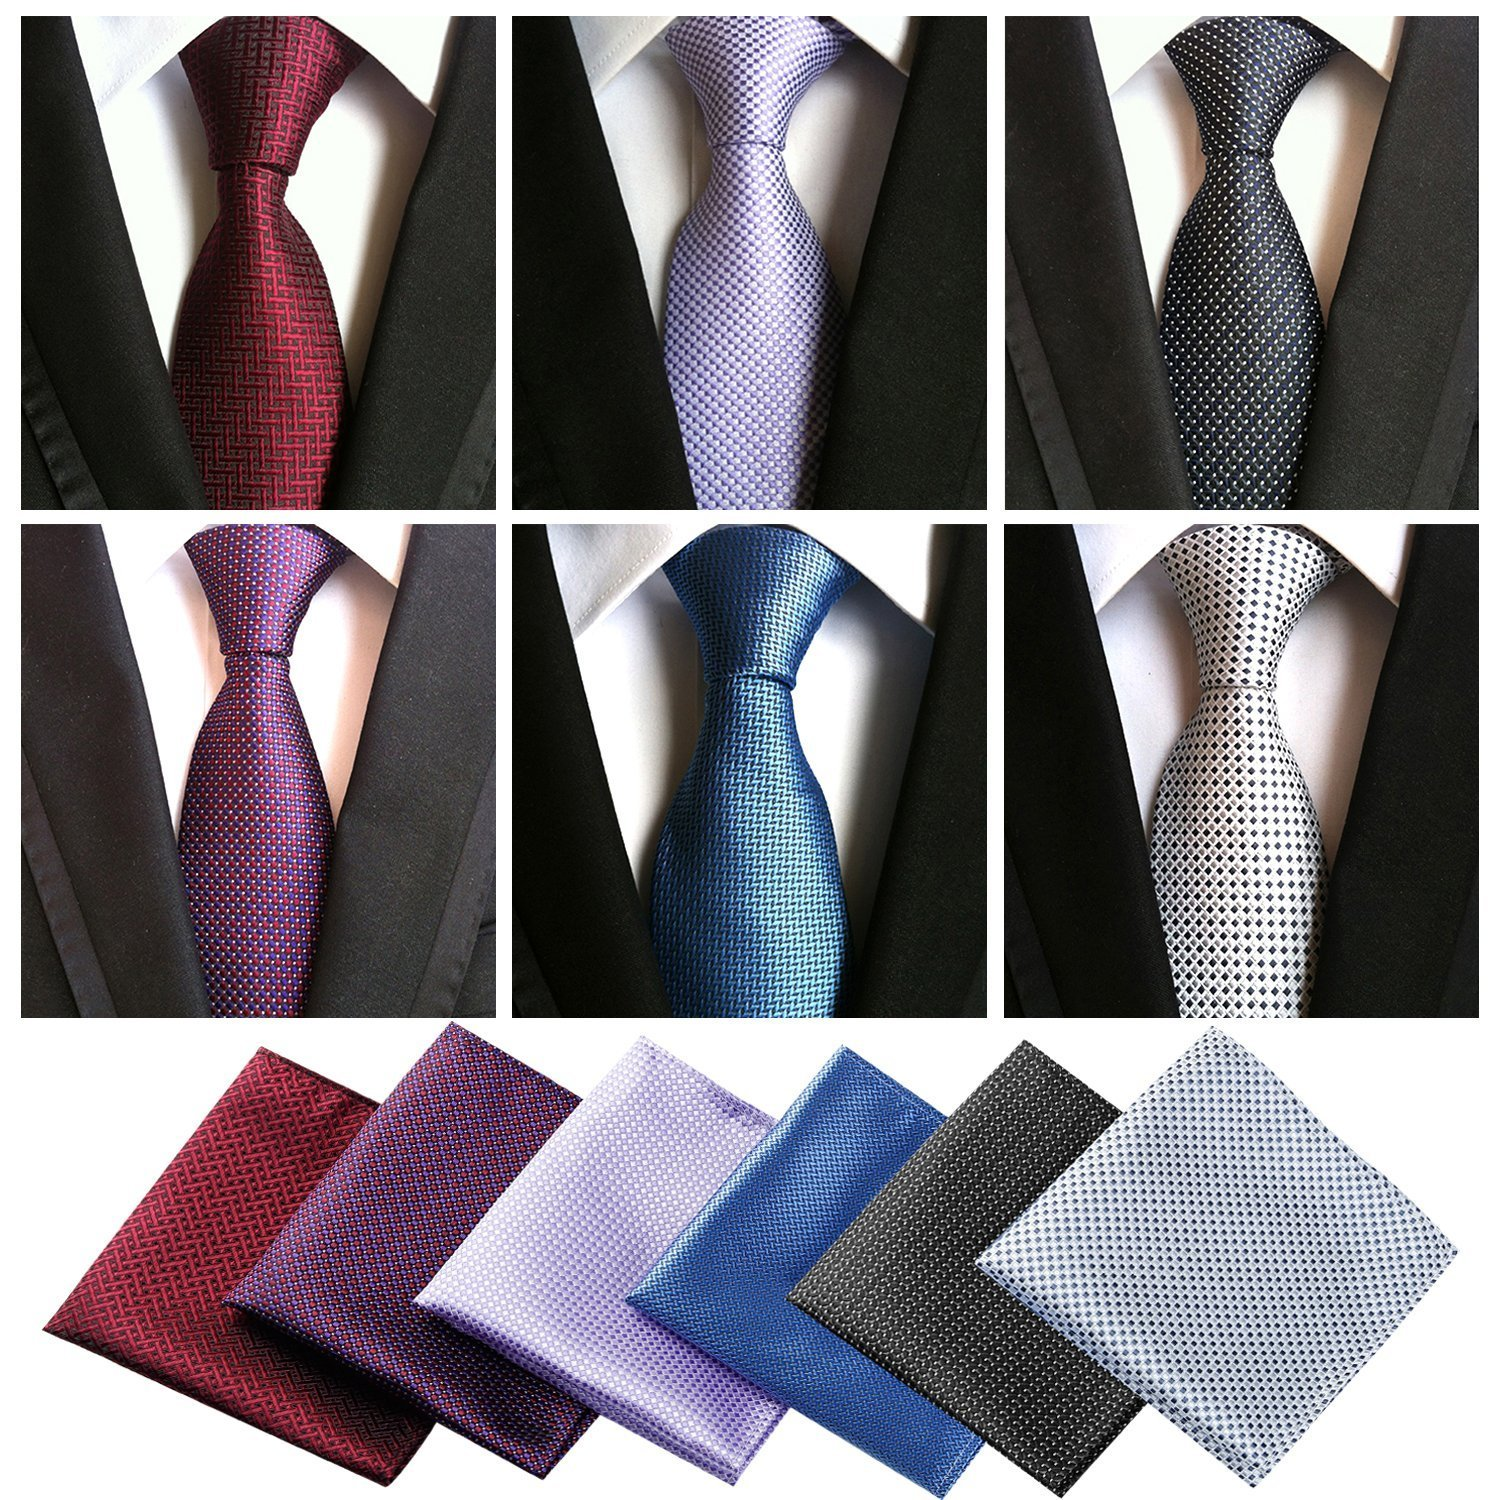 382a21a11f41 Package includes: 6 high quality Ties and 6 Pocket Squares (Same material)  With a free pocket square holder and one delicate gift box.